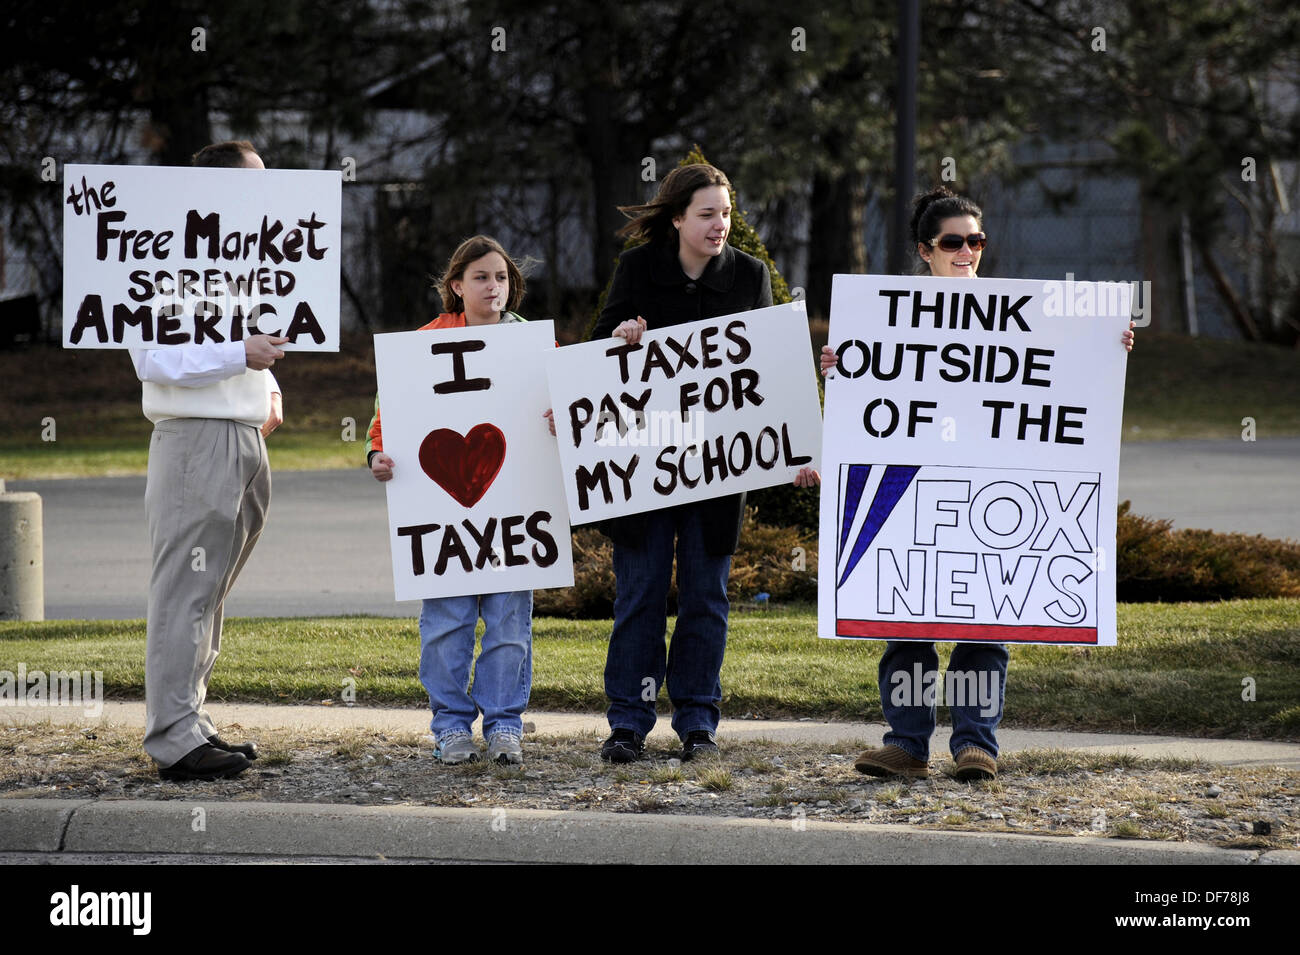 Ordinary citizen protestors protest taxes and other government wasteful spending - Stock Image